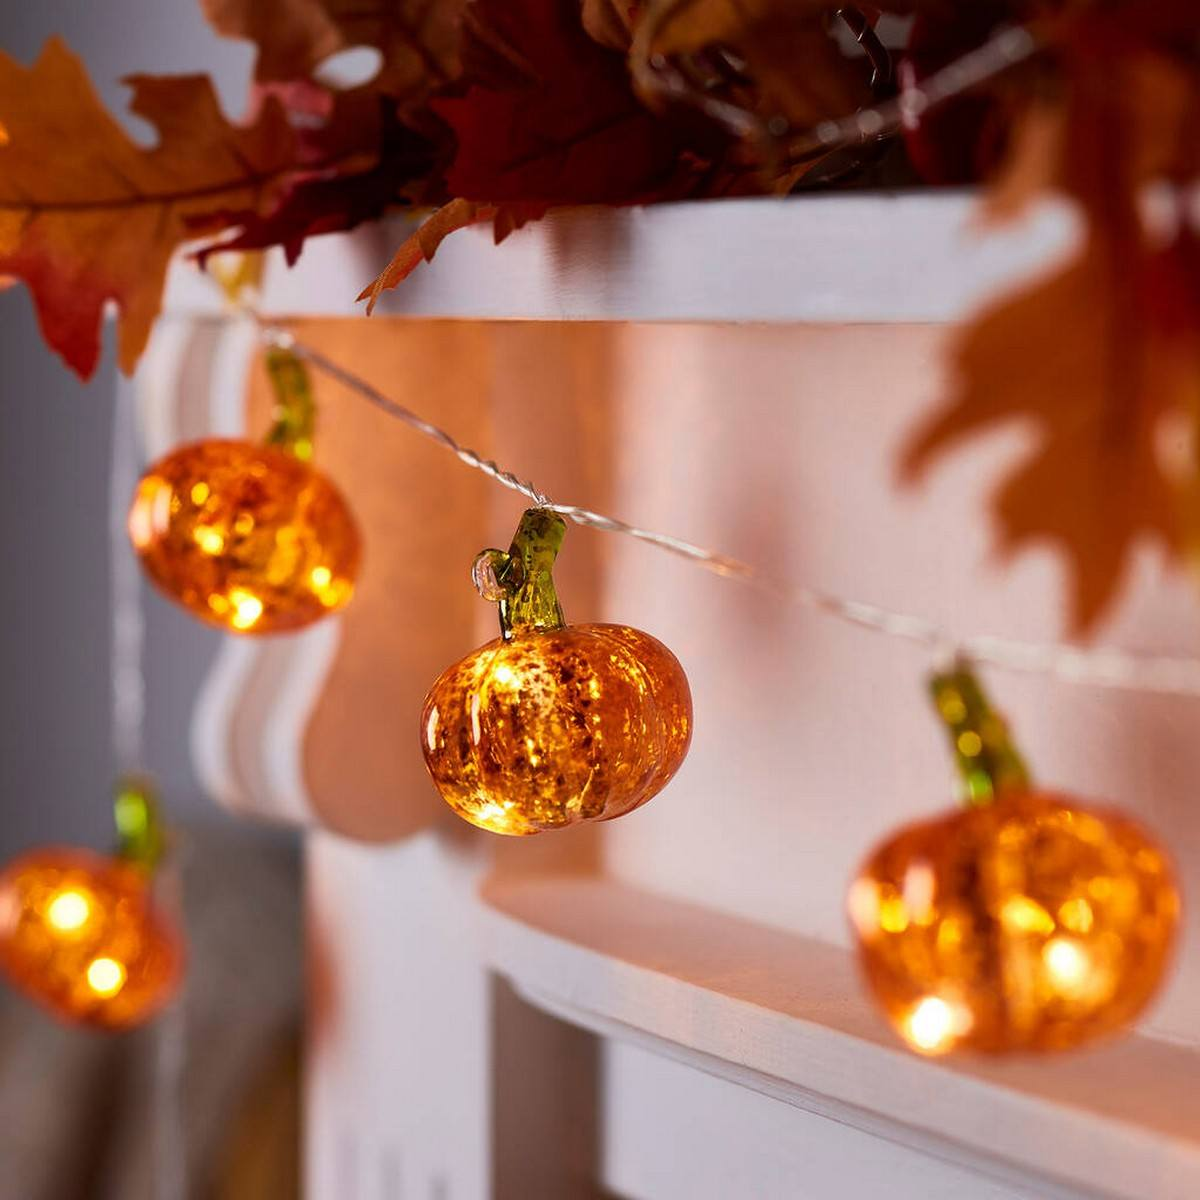 There is no better way to celebrate the fall season than decorating pumpkins!